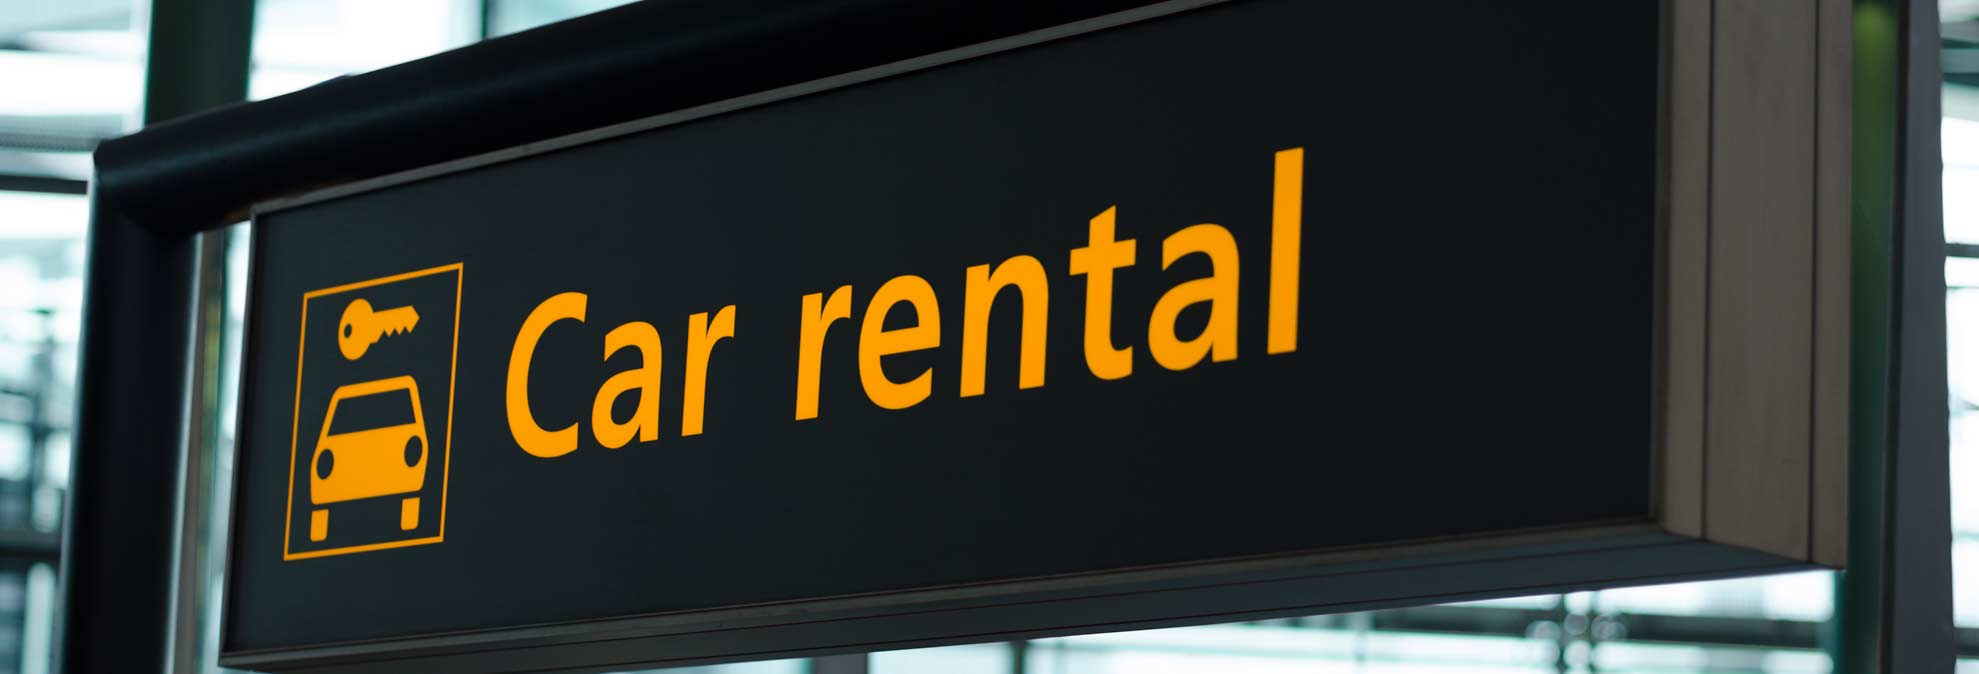 Buying Used Rental Cars Consumer Reports